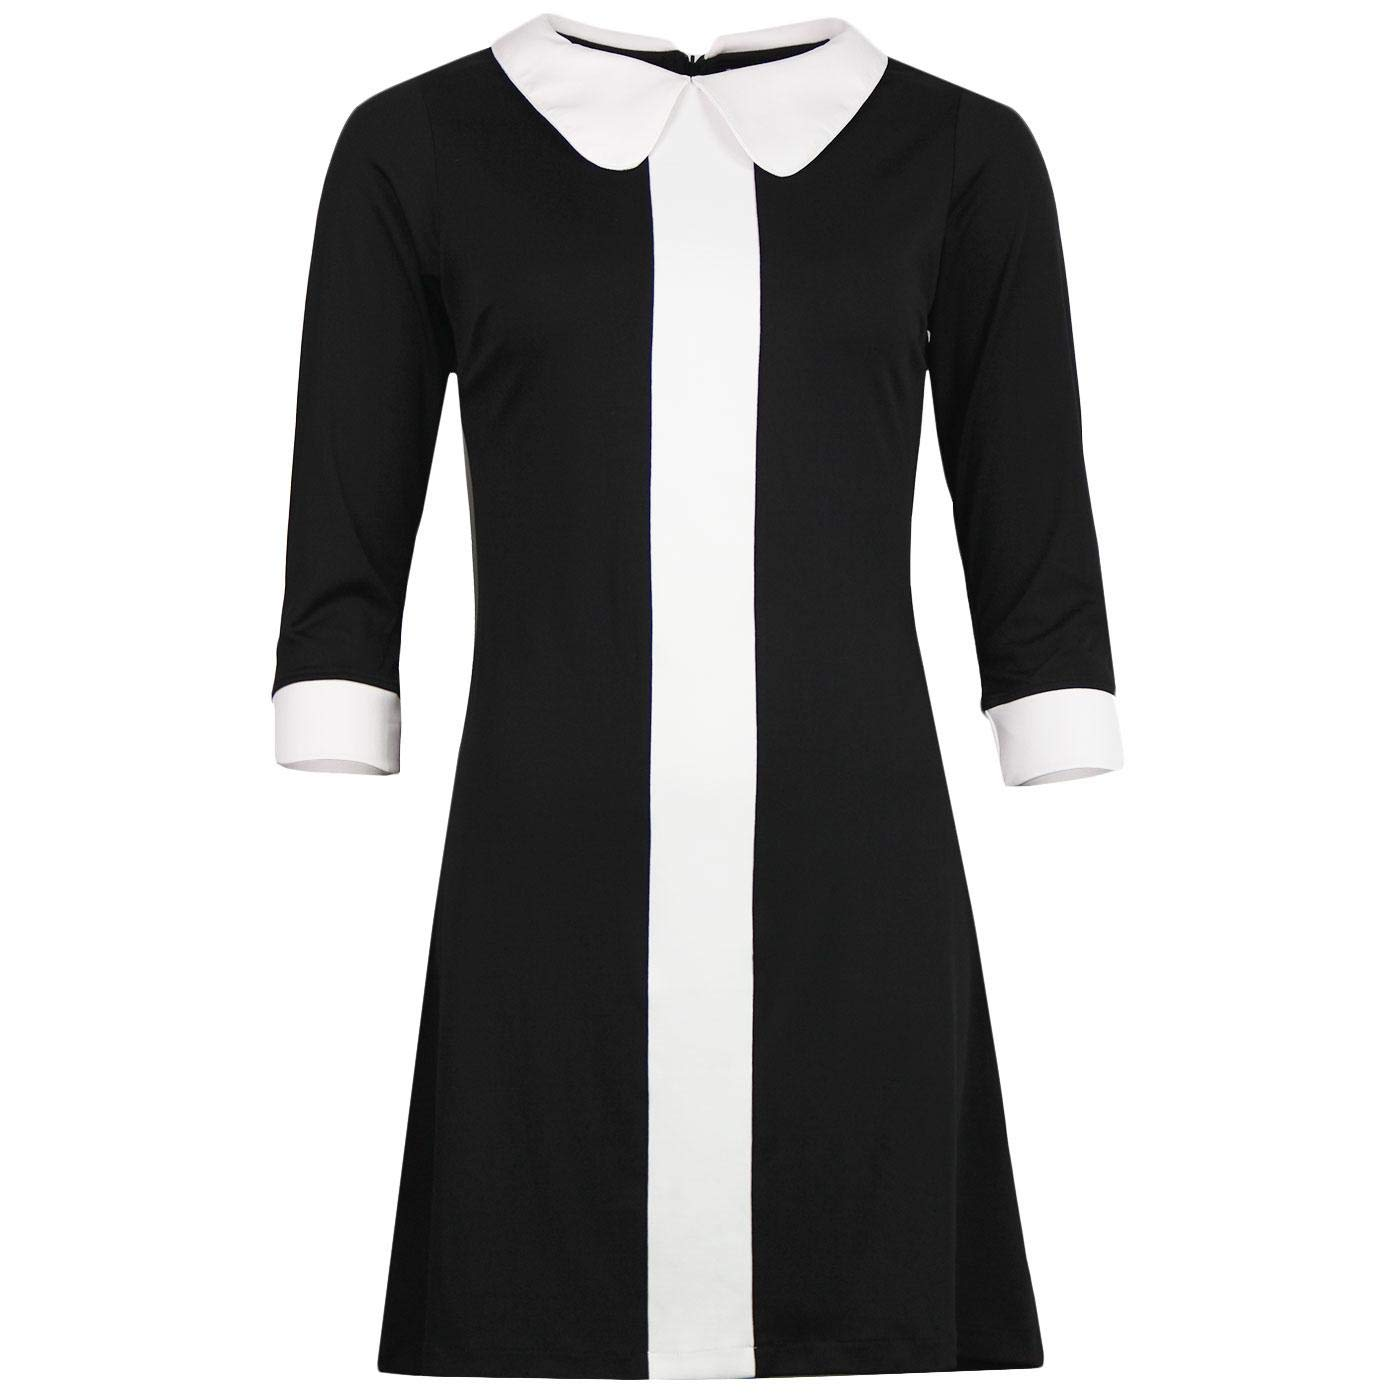 1960s Mad Men Dresses and Clothing Styles Madcap England Odyssey Retro 60s Mod Stripe Panel Jersey Dress £39.99 AT vintagedancer.com